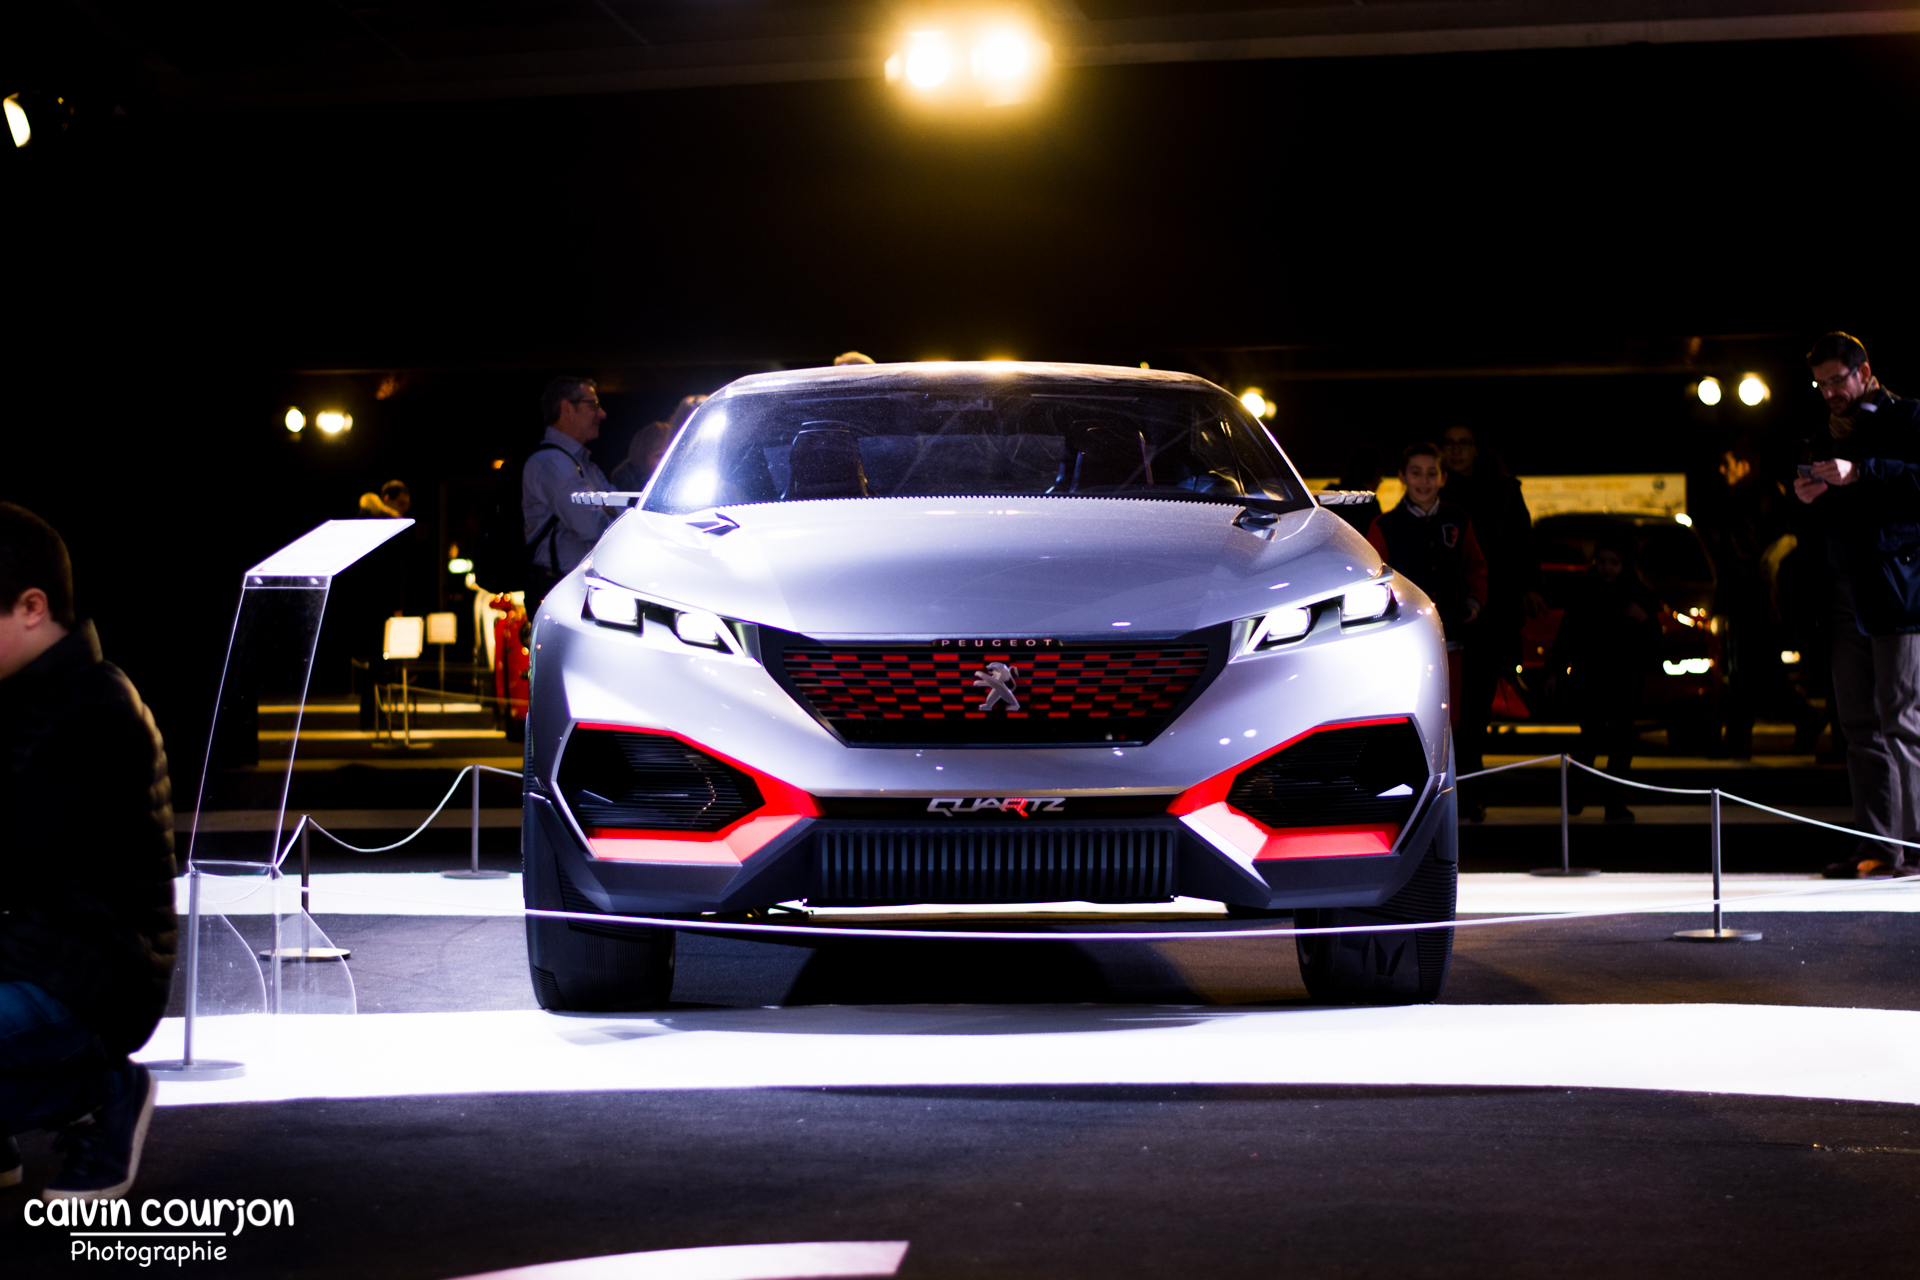 Peugeot Quartz - FAI 2015 - Paris - Calvin Courjon Photographie